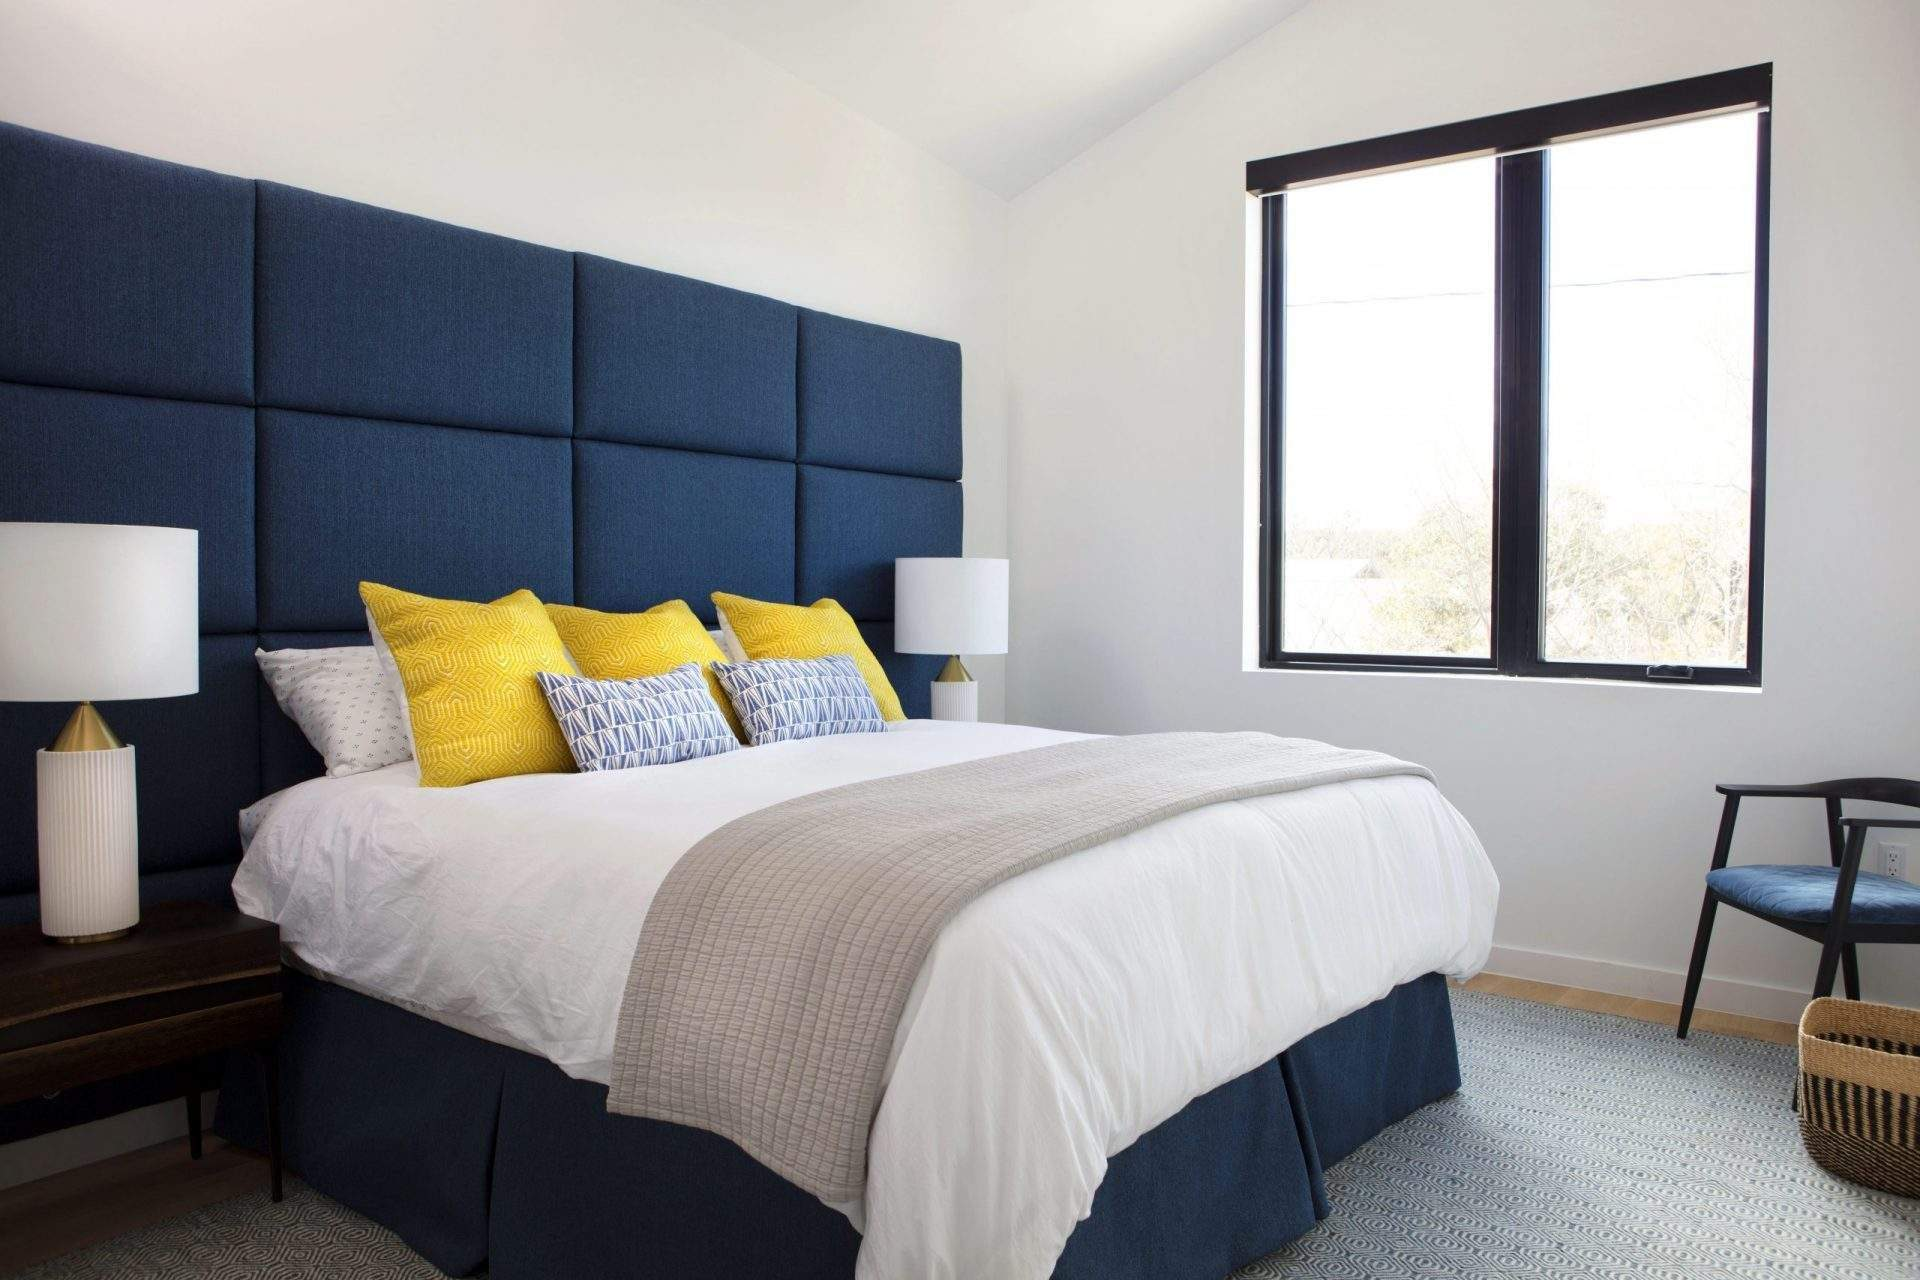 travis heights | blue headboard, nightstand, and lamp and window | austin, texas